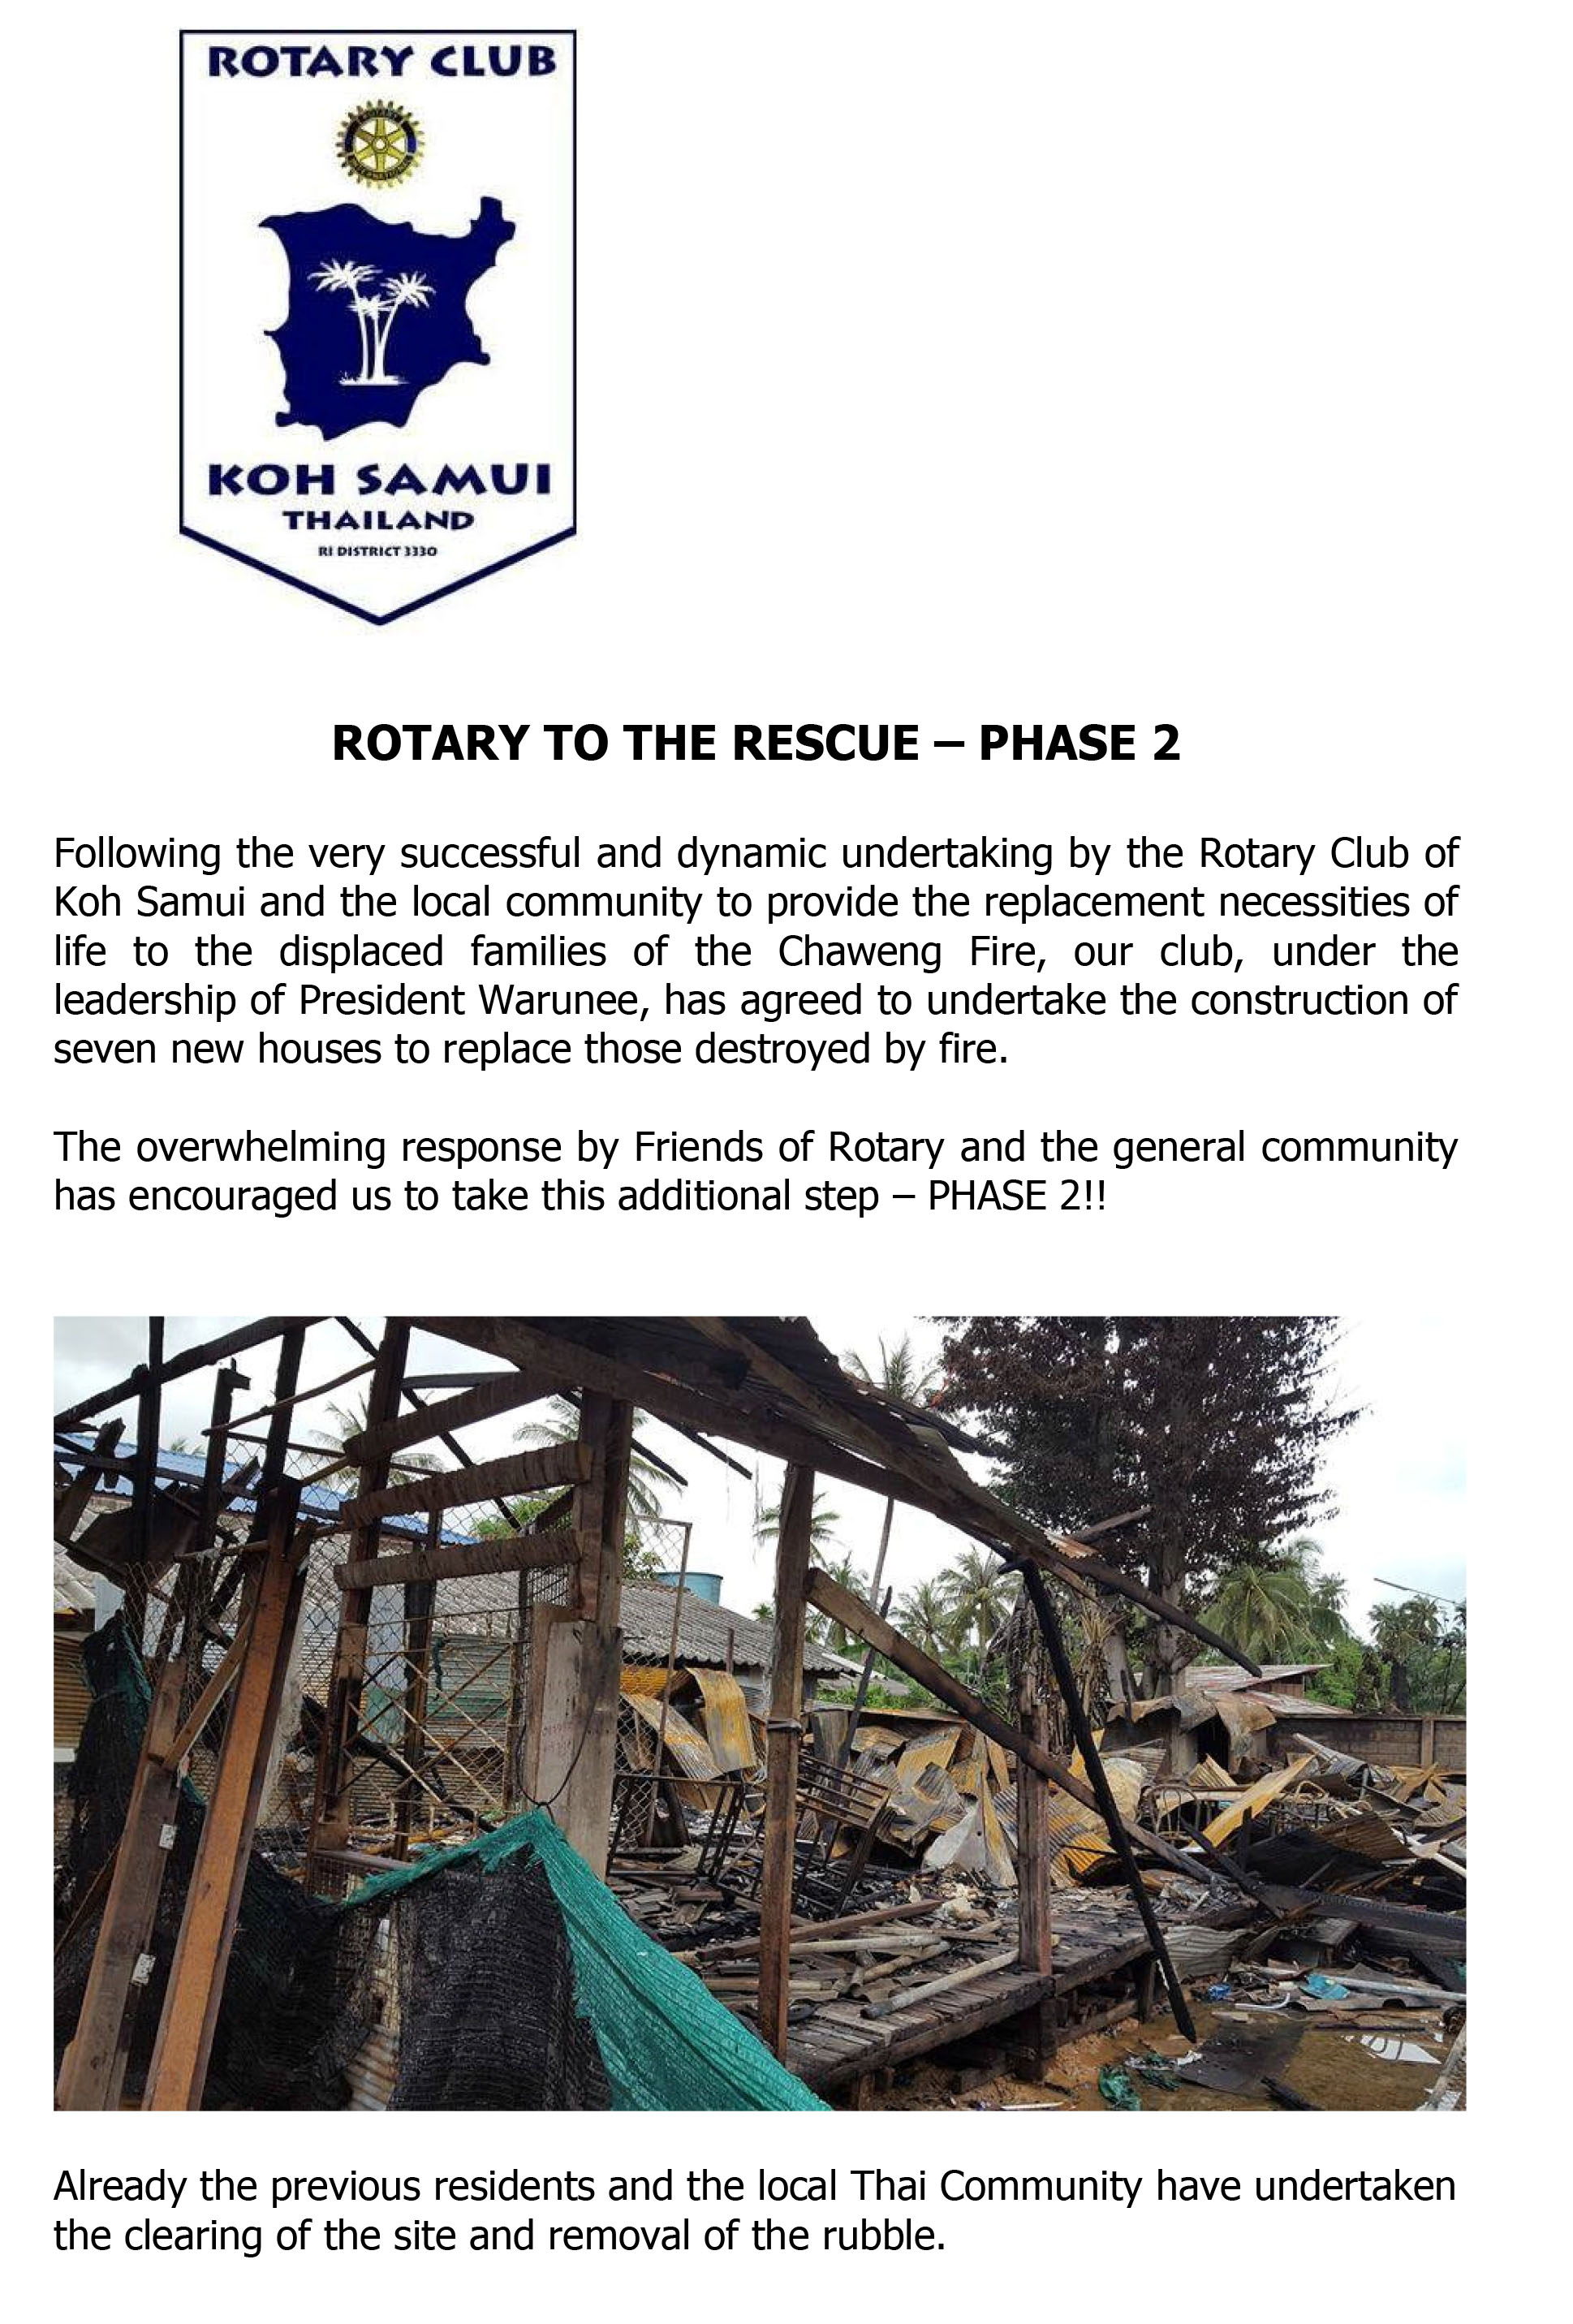 ROTARY TO THE RESCUE – PHASE 2 | Samui Times